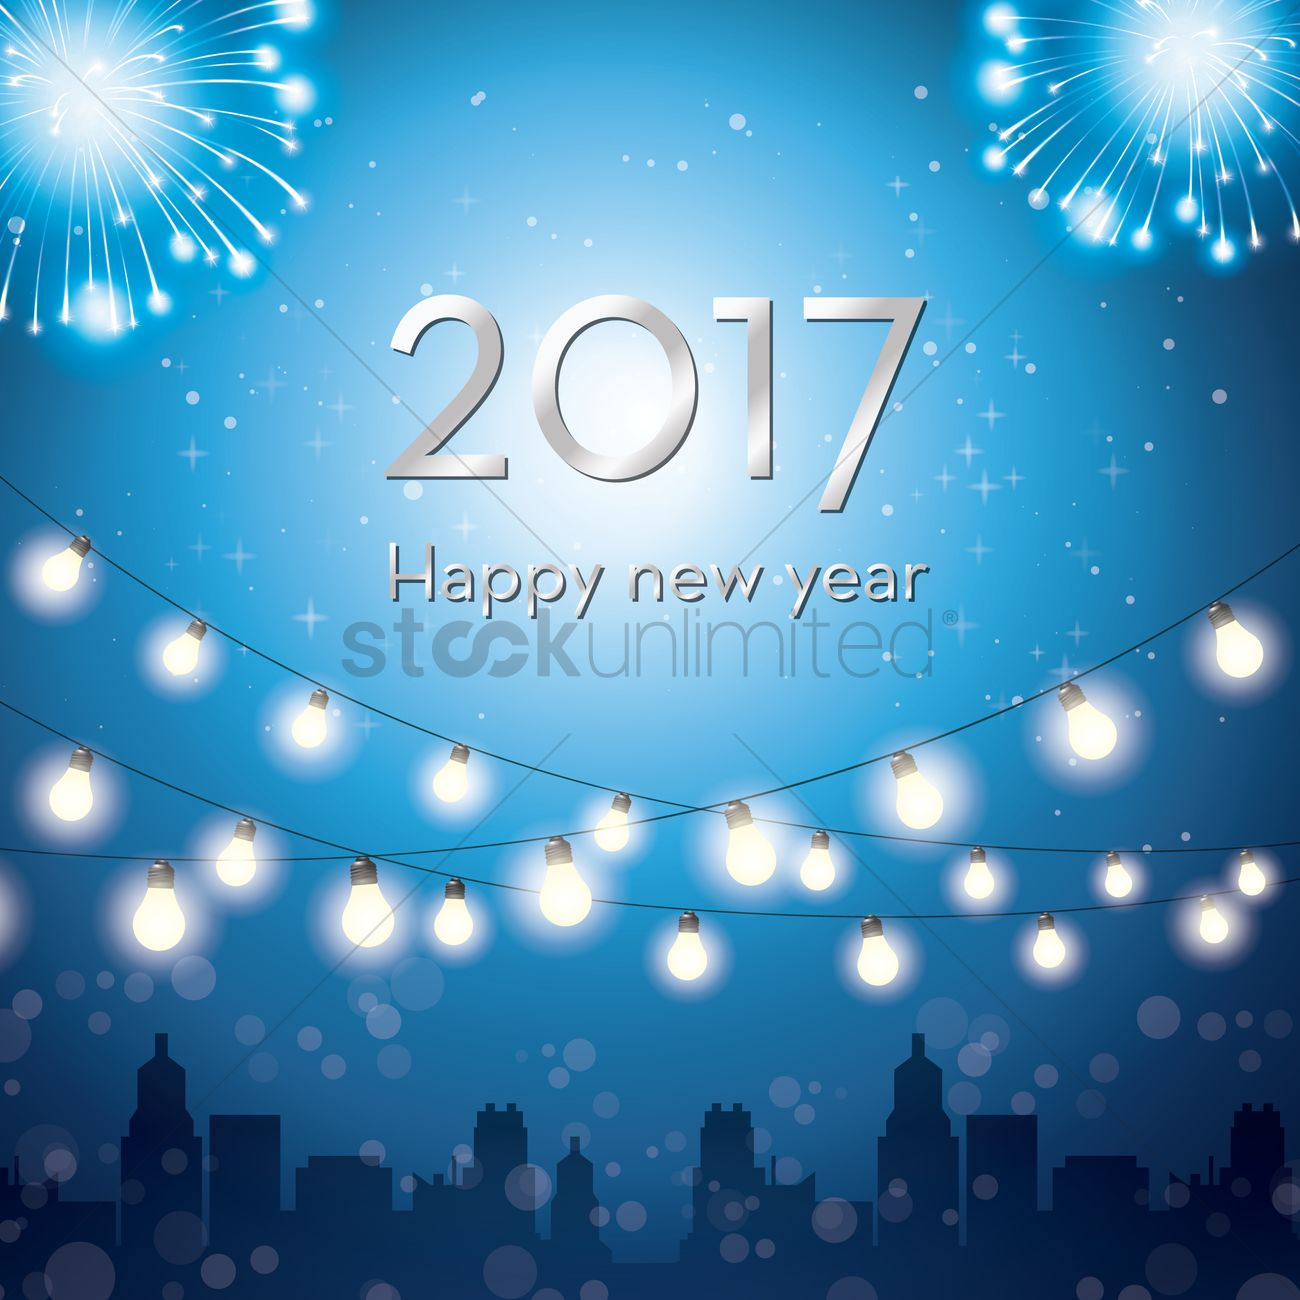 2017 happy new year greeting vector image 1940263 stockunlimited 2017 happy new year greeting vector graphic m4hsunfo